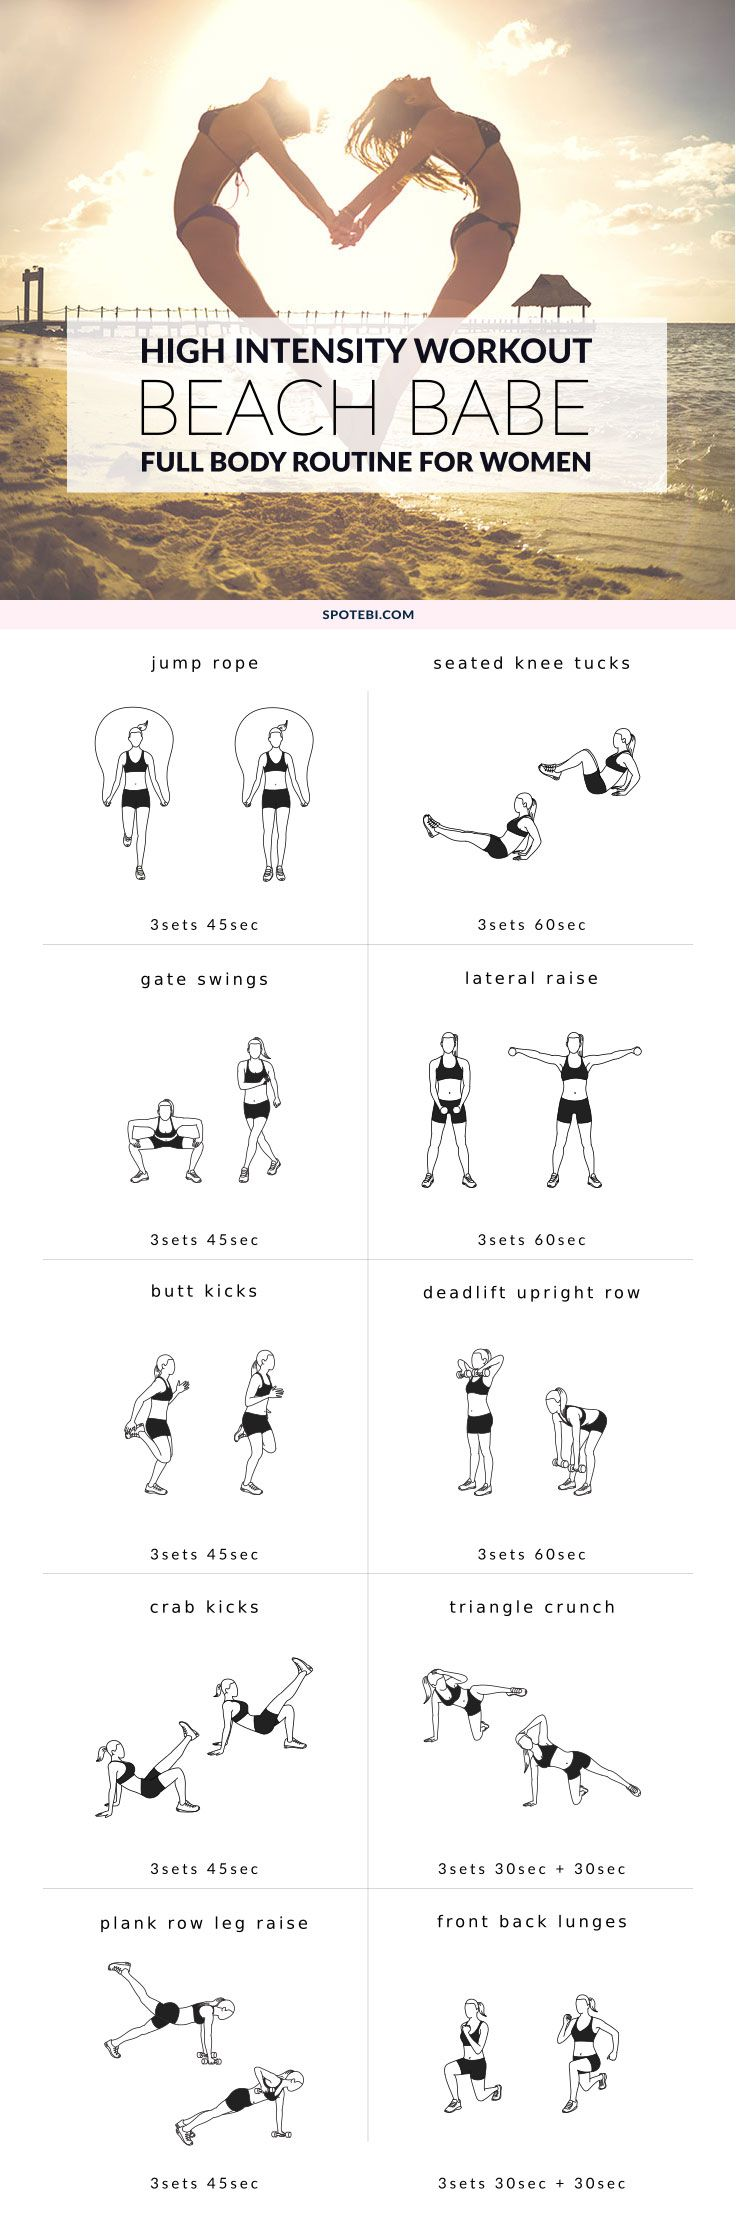 Train your entire body and boost your metabolism with this high-intensity workout for women. This circuit helps you build a healthier heart and kicks your body's repair cycle into high gear, helping you burn more calories during and up to 24 hours after the workout is over. https://www.spotebi.com/workout-routines/high-intensity-workout/